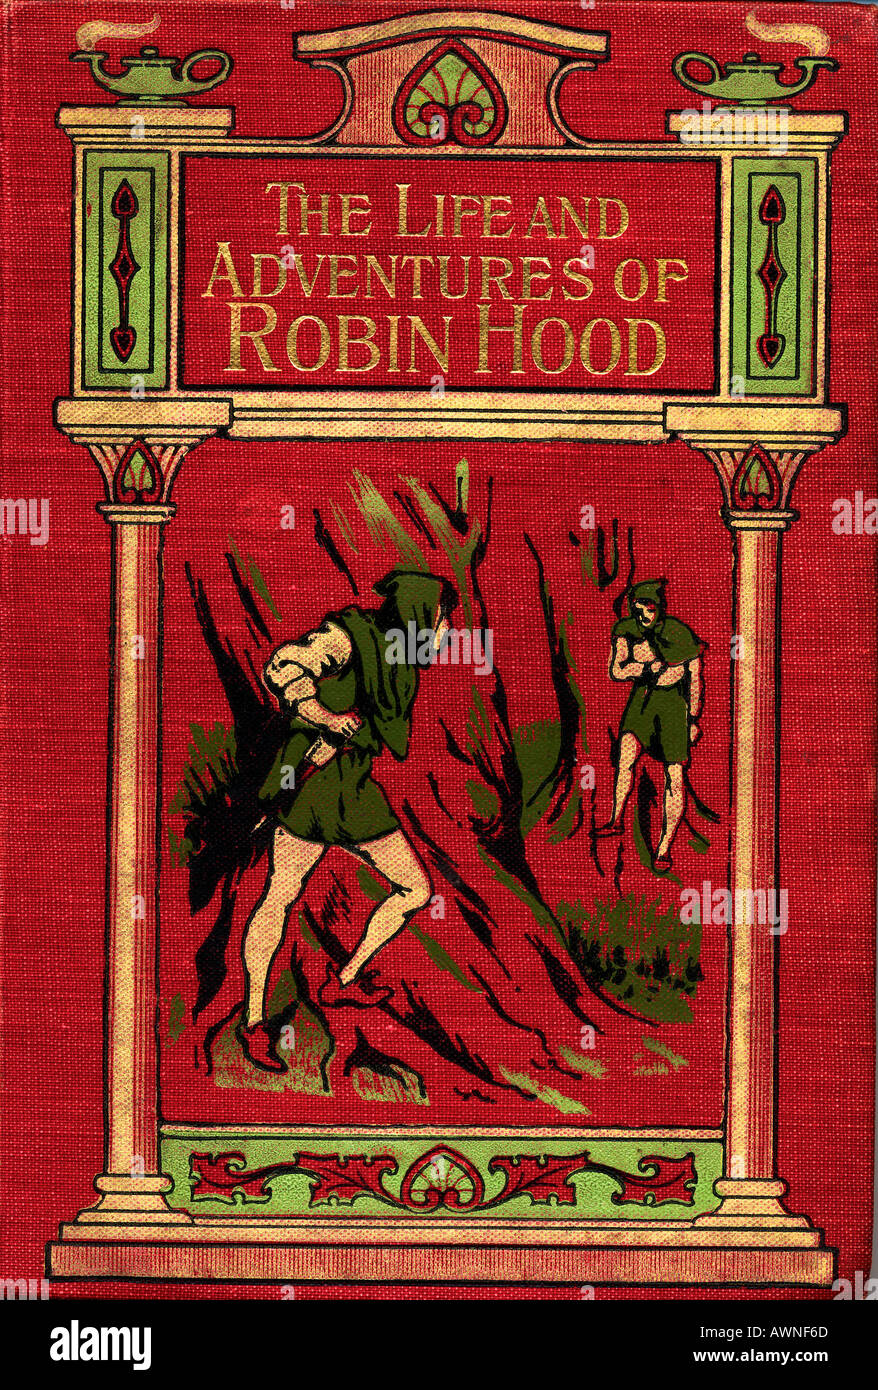 Where Is The Illustration On The Front Cover Of A Book ~ The life and adventures of robin hood front cover from the book of